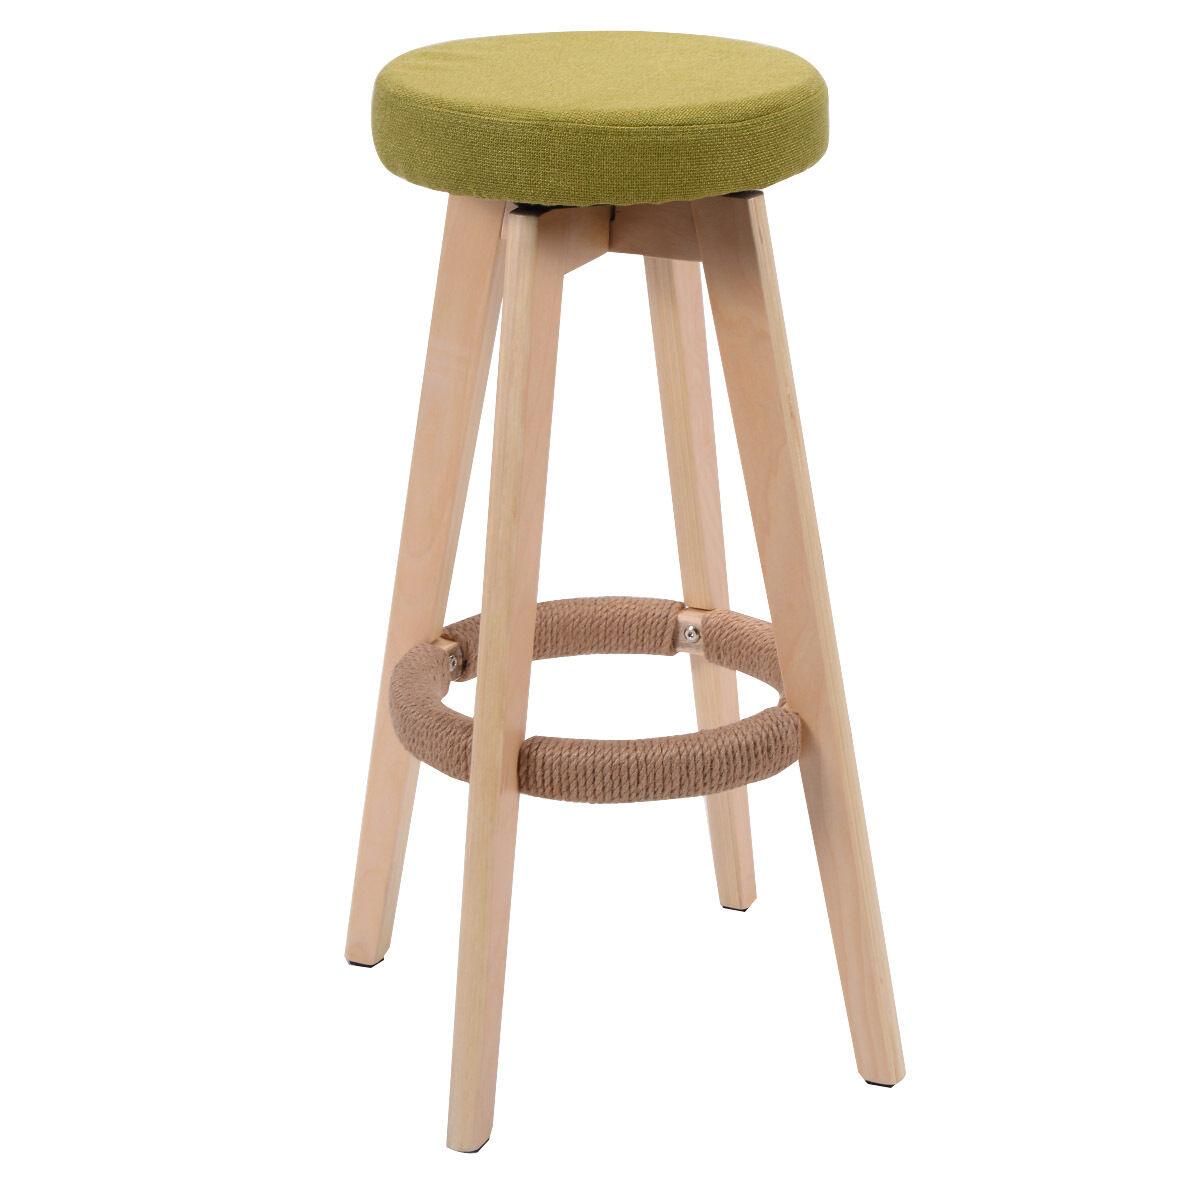 Round Wooden Chair Linen Bar Stool Dining Counter Barstools High Chair Furniture Ebay